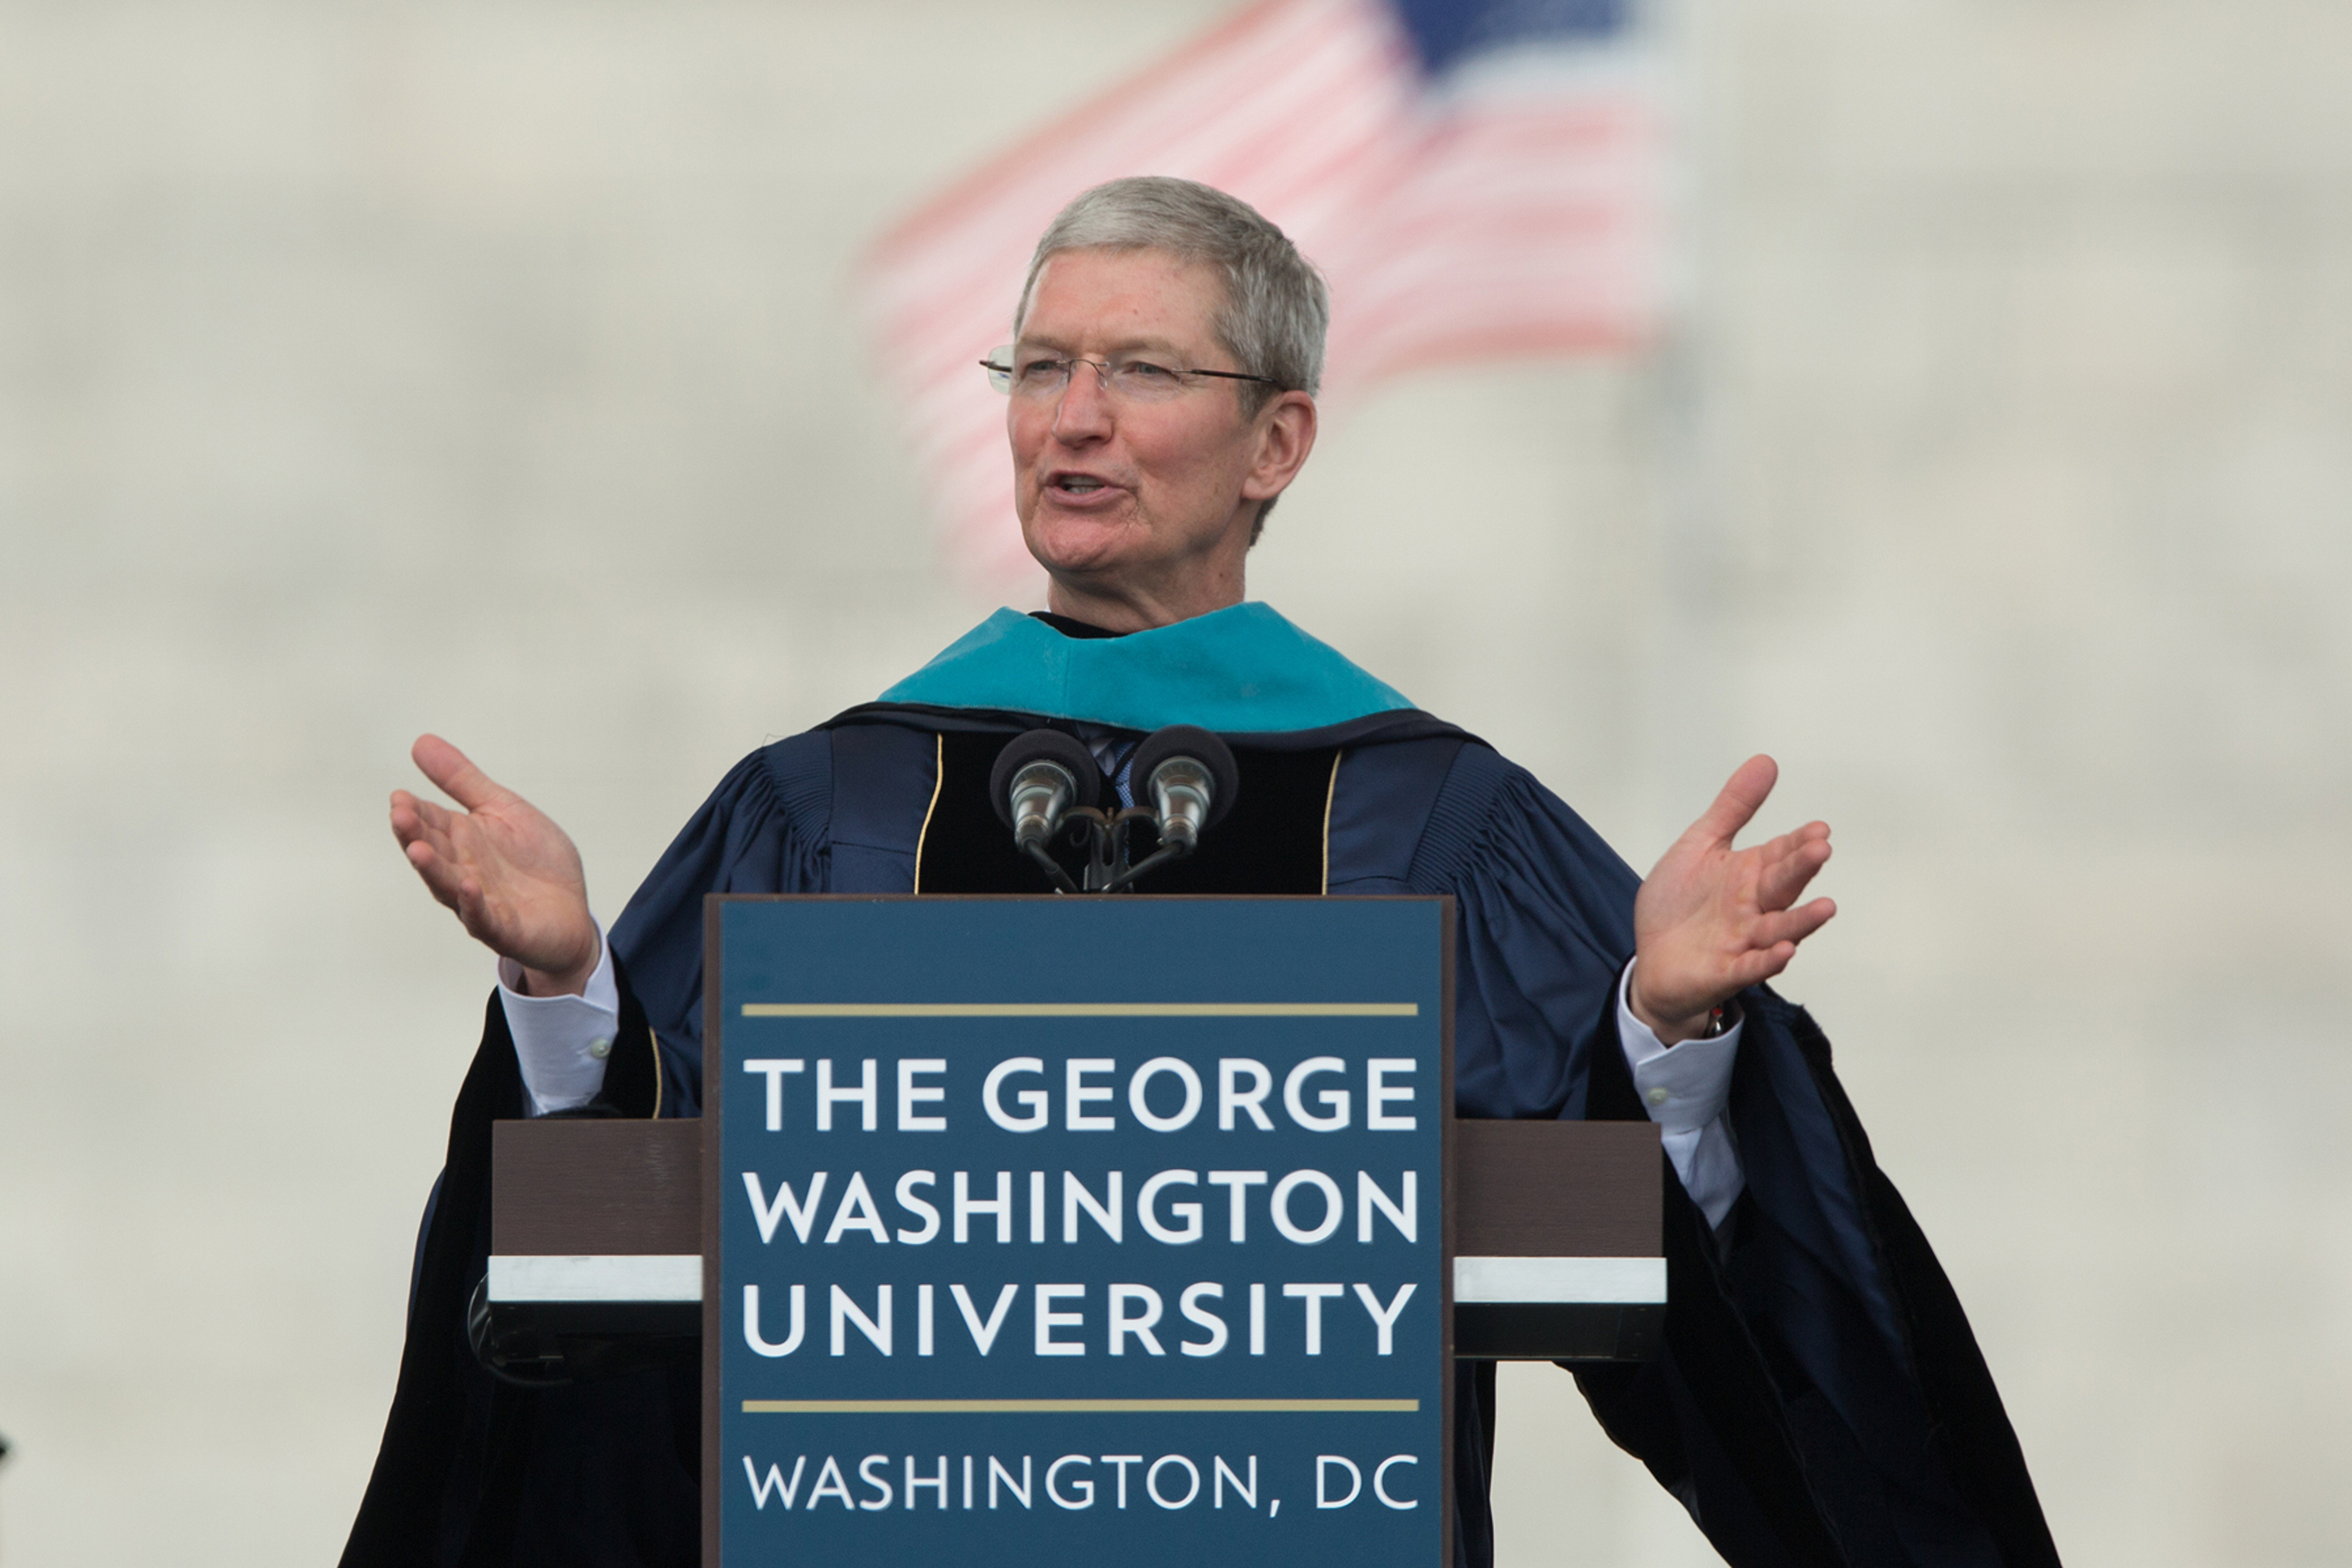 Apple CEO Tim Cook Urges GW Graduates to Find Their North Star